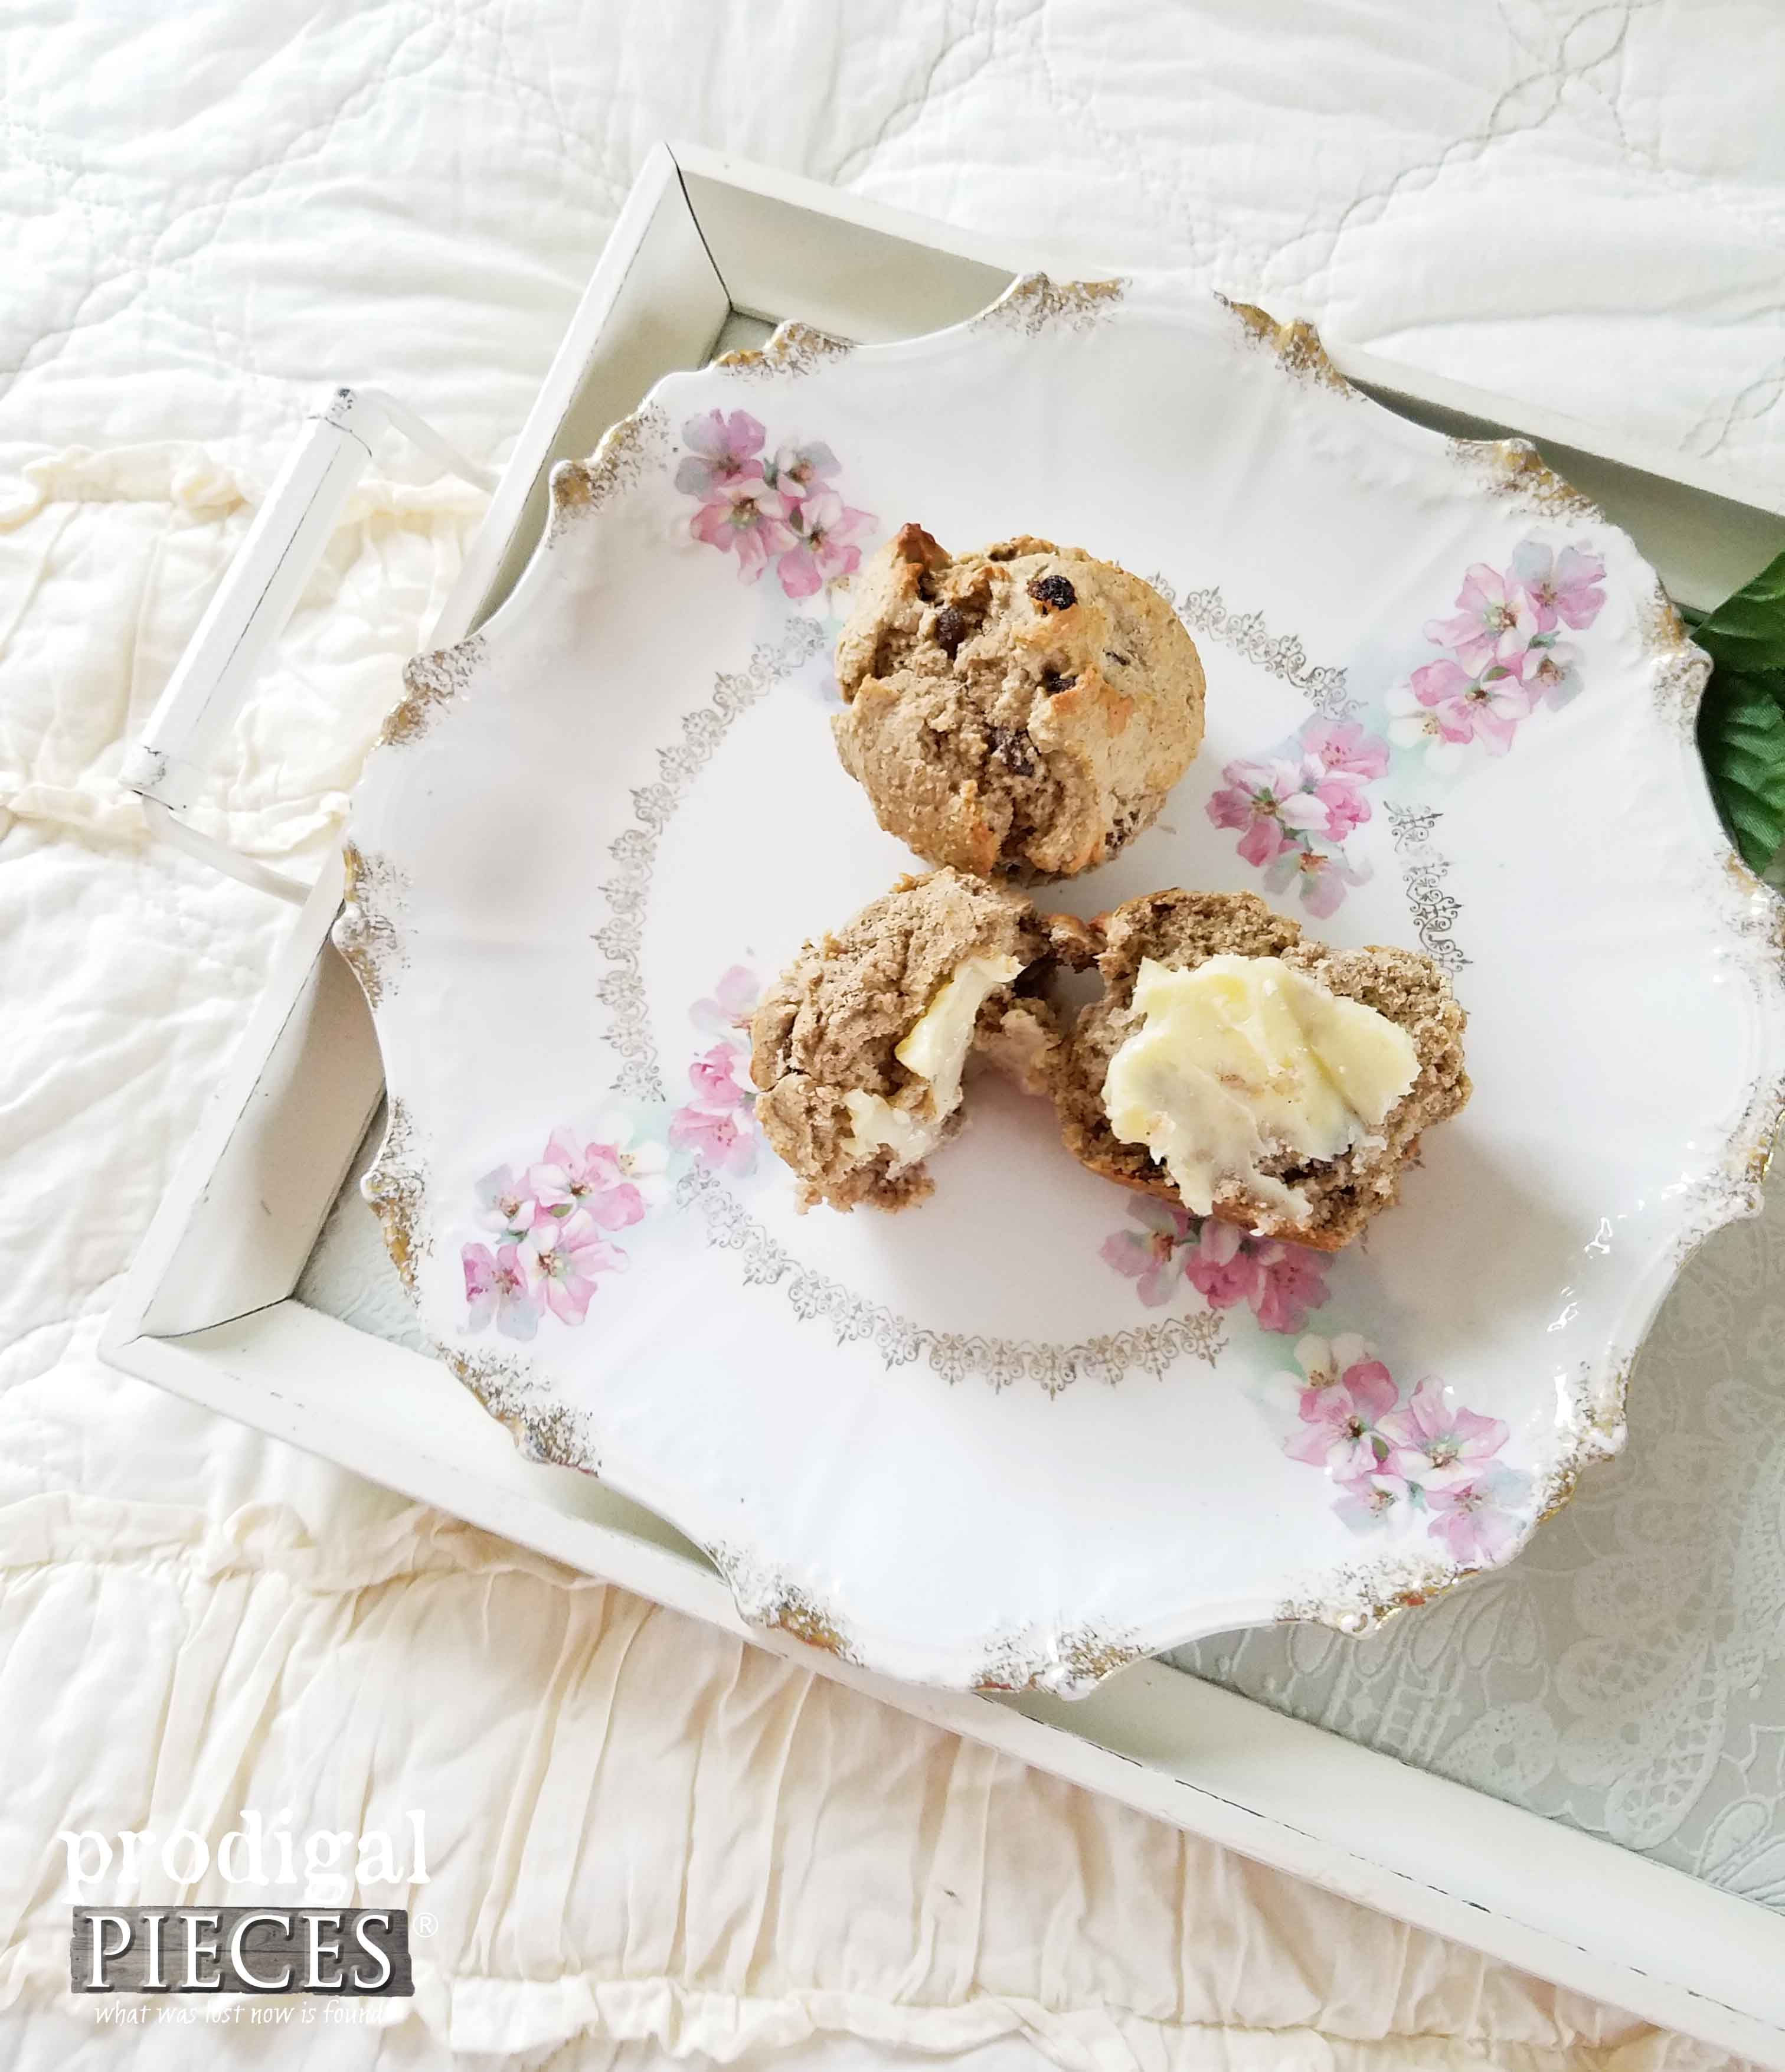 Grain Free Muffin Recipe by Prodigal Pieces | prodigalpieces.com